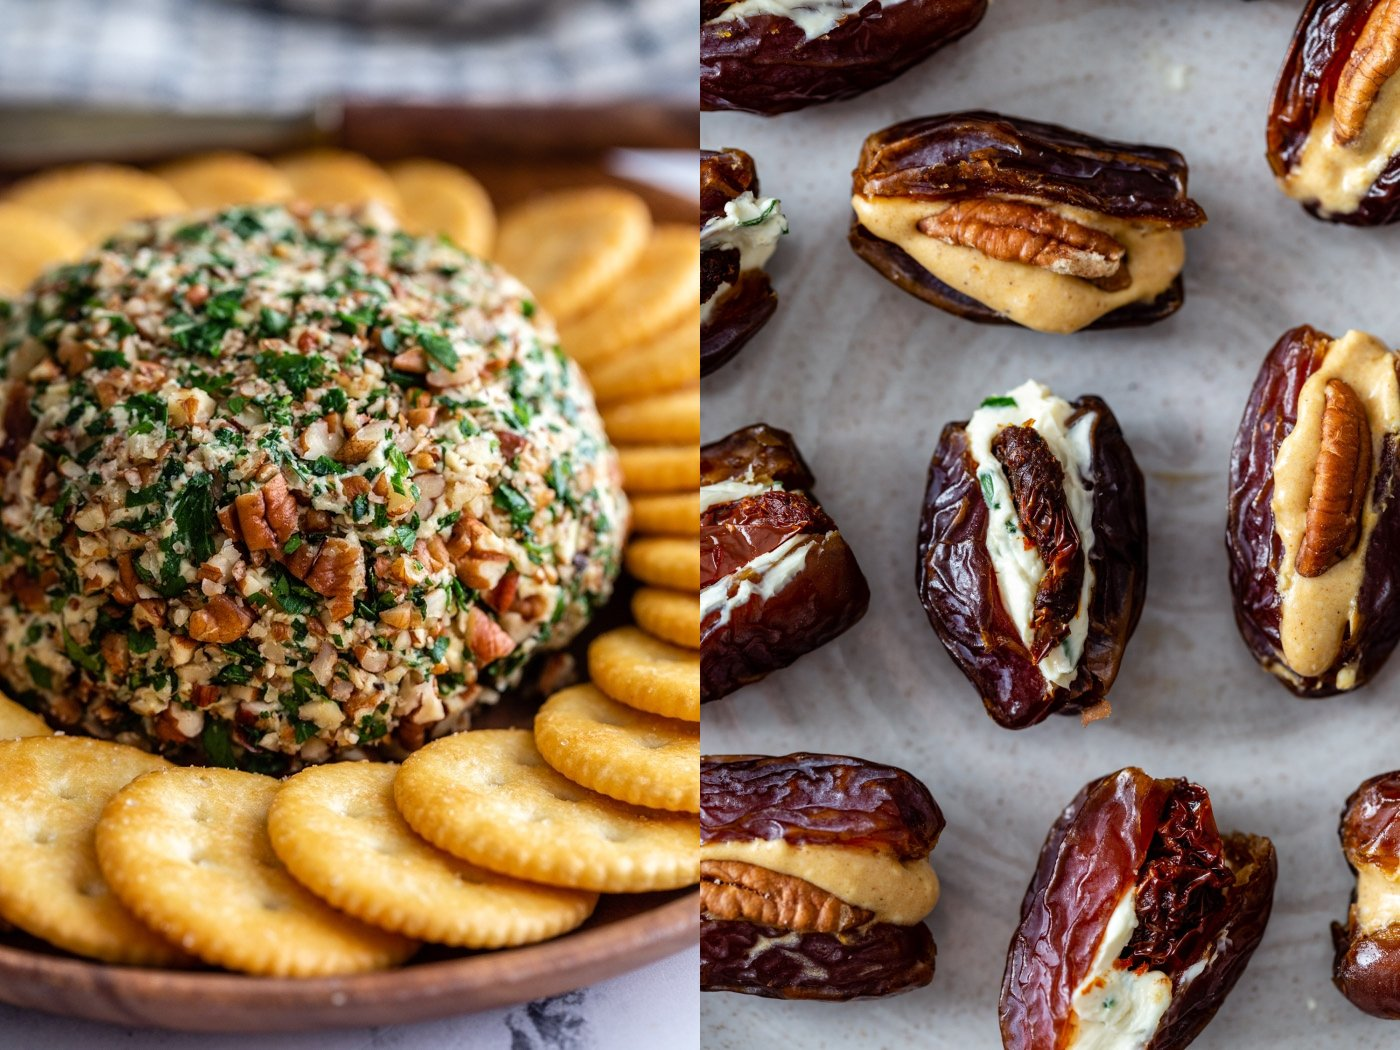 side by side images. left image: vegan cheeseball surrounded by crackers. Right image: cream cheese stuffed dates on a plate